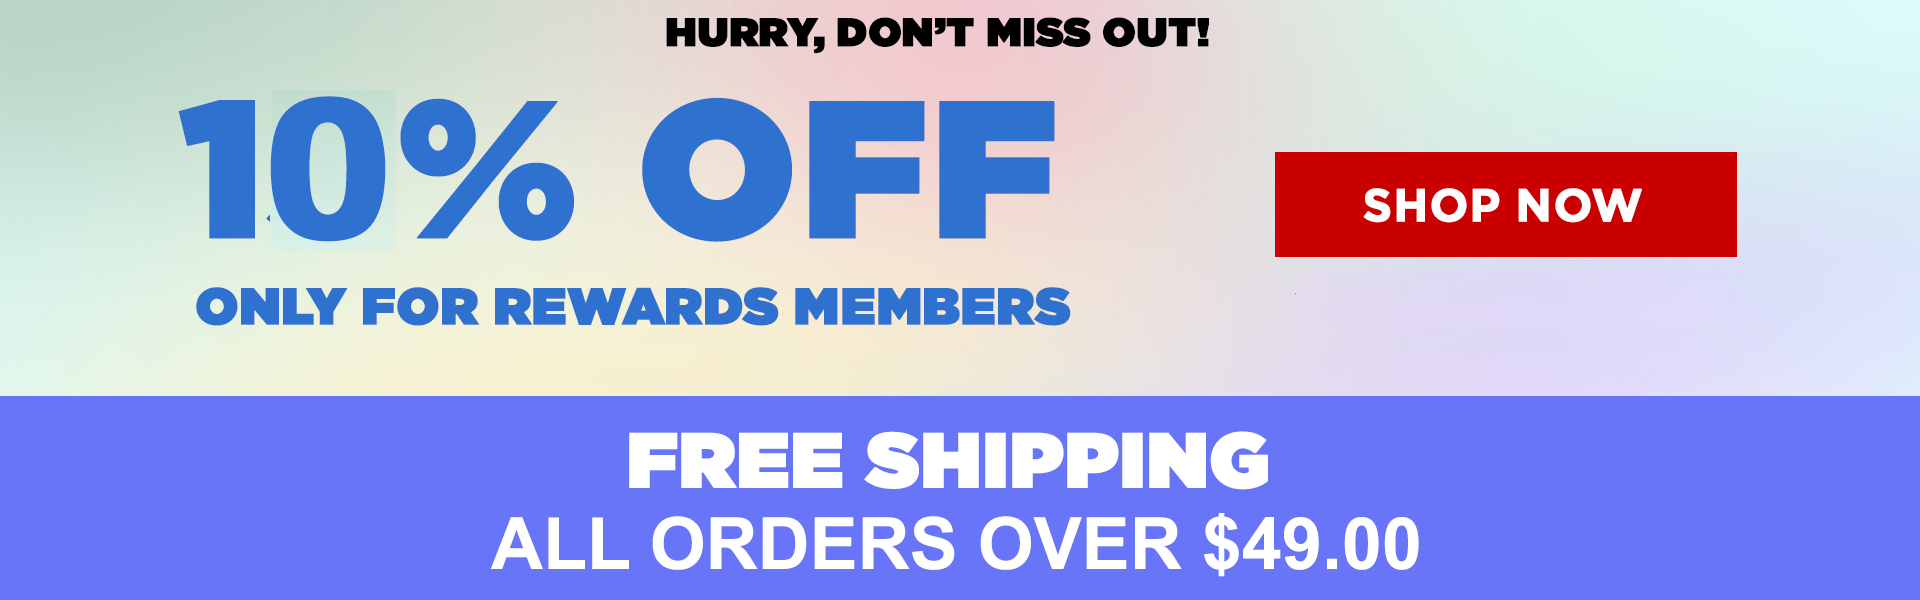 10% Off Rewards Members. Free Shipping Orders Over $49.99